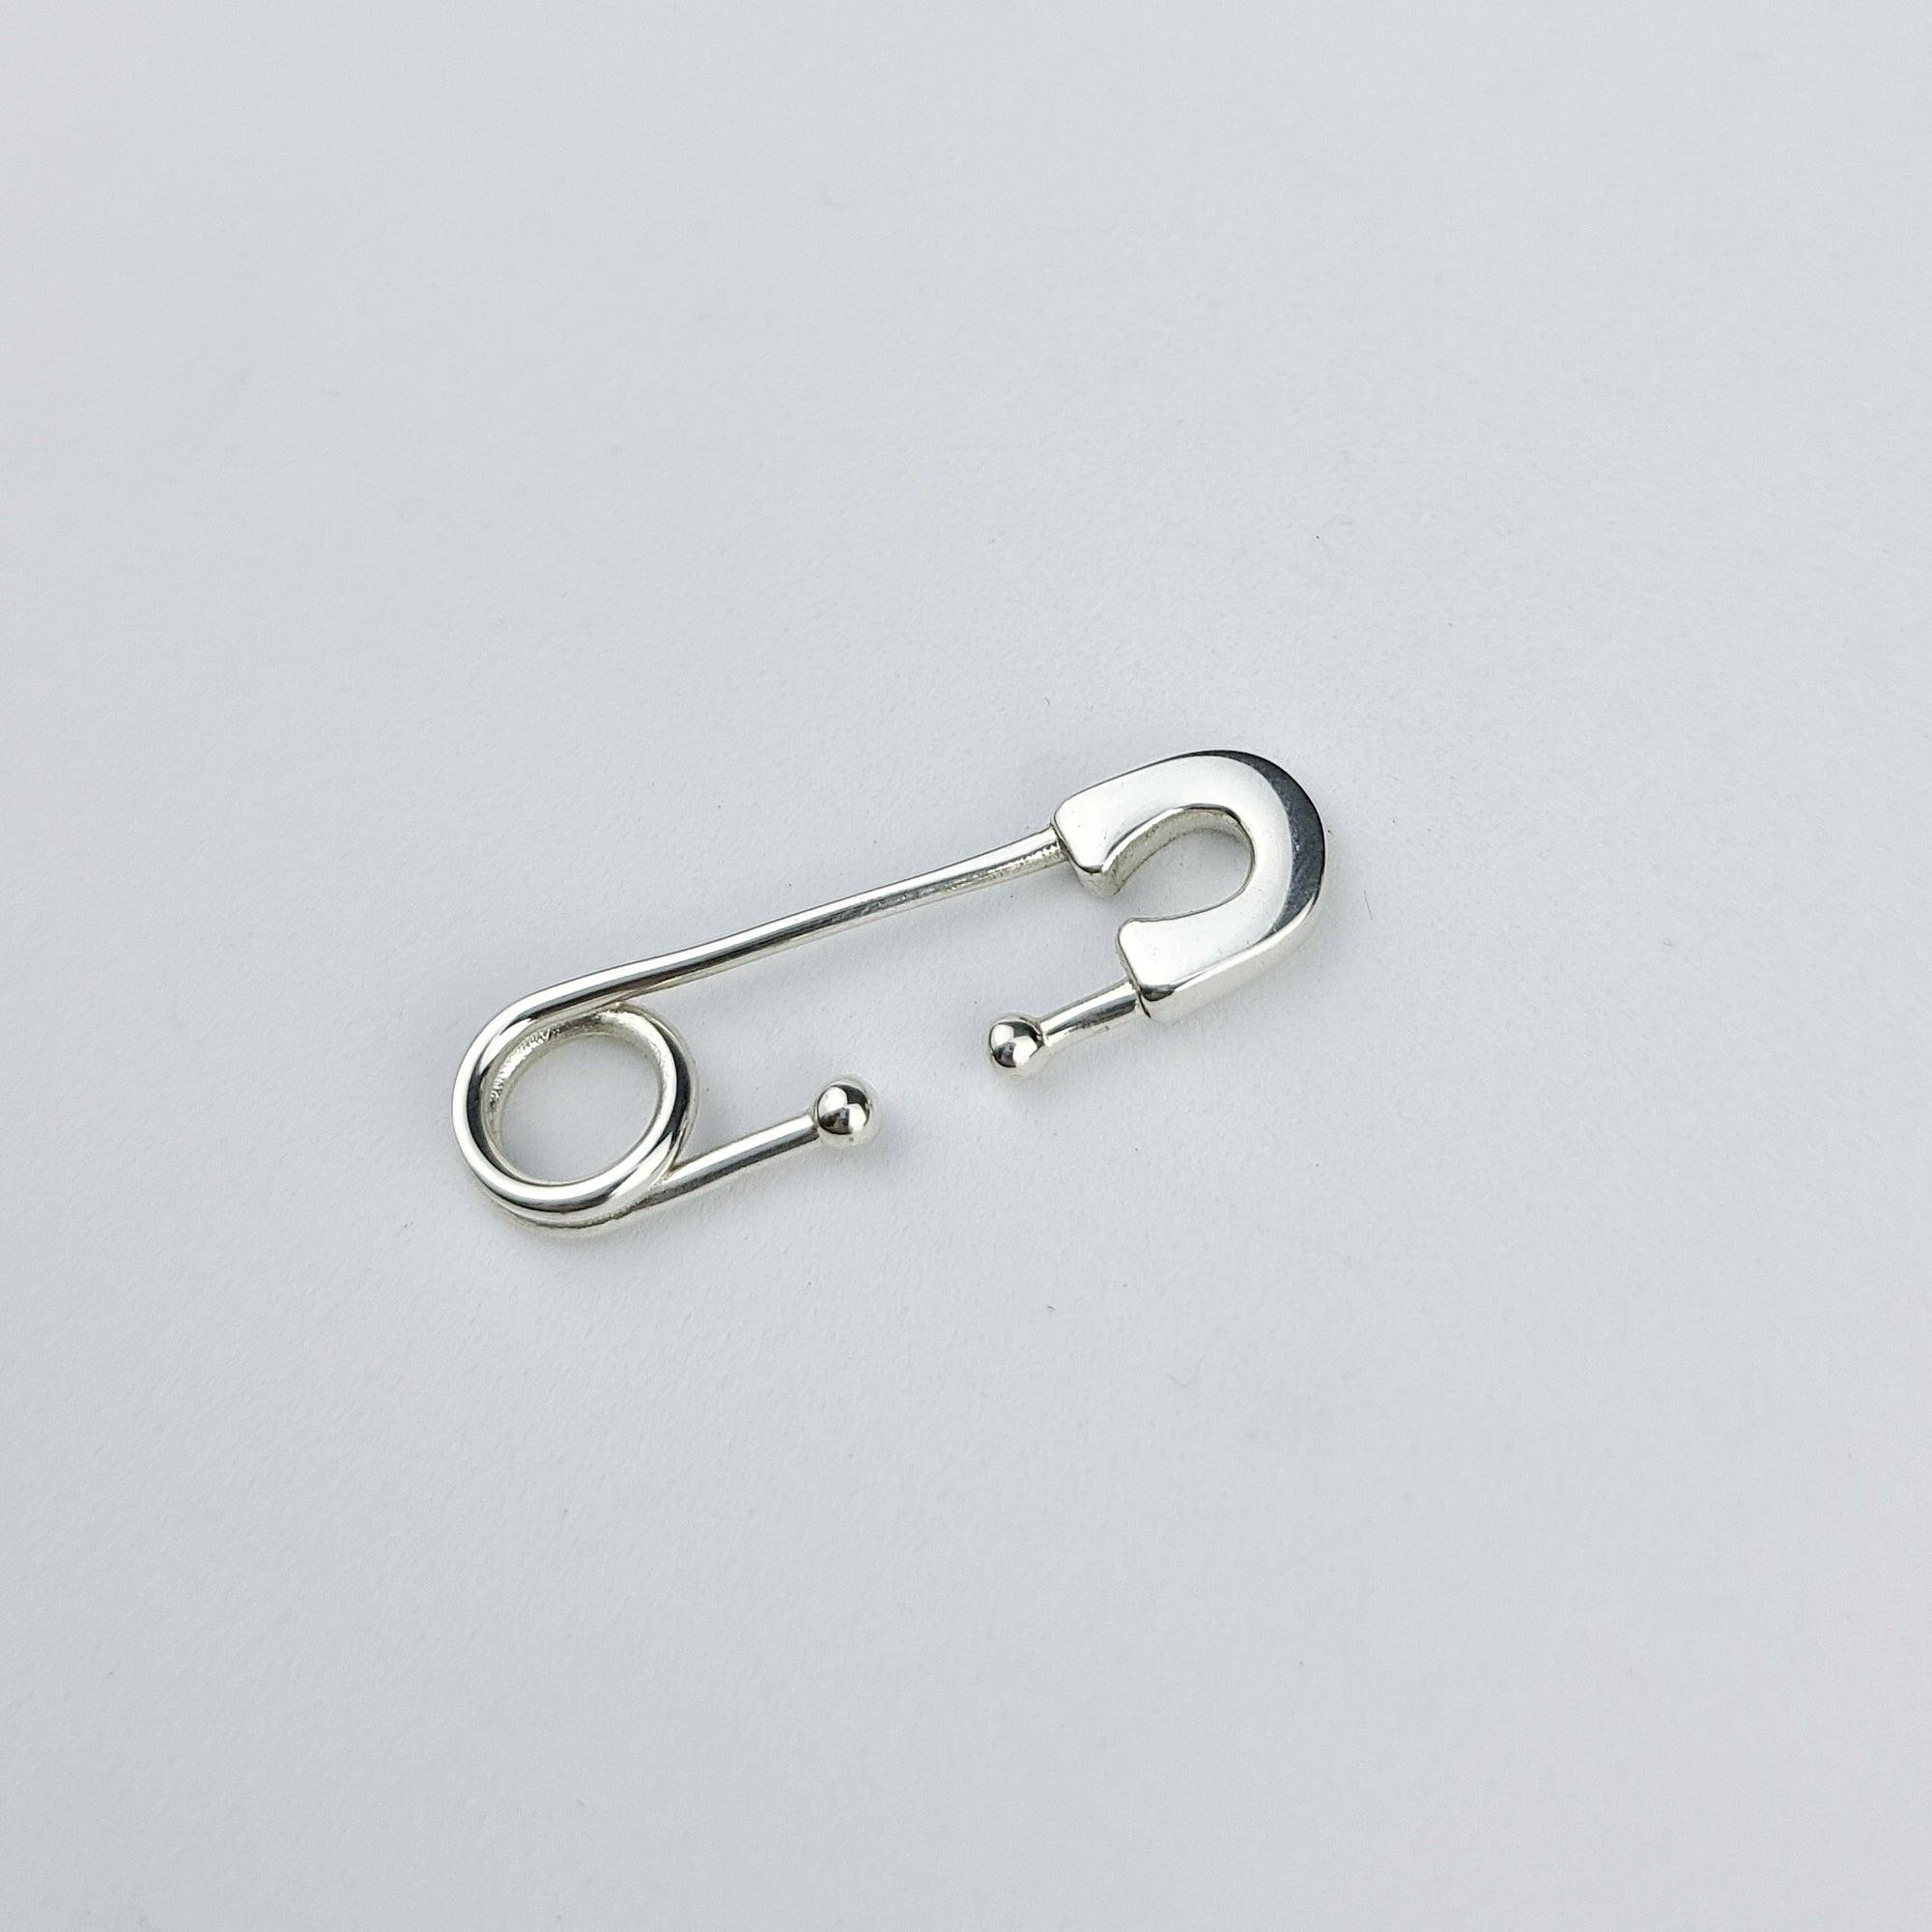 FAKE Safety Pin Septum / Faux Cartillage Piercing